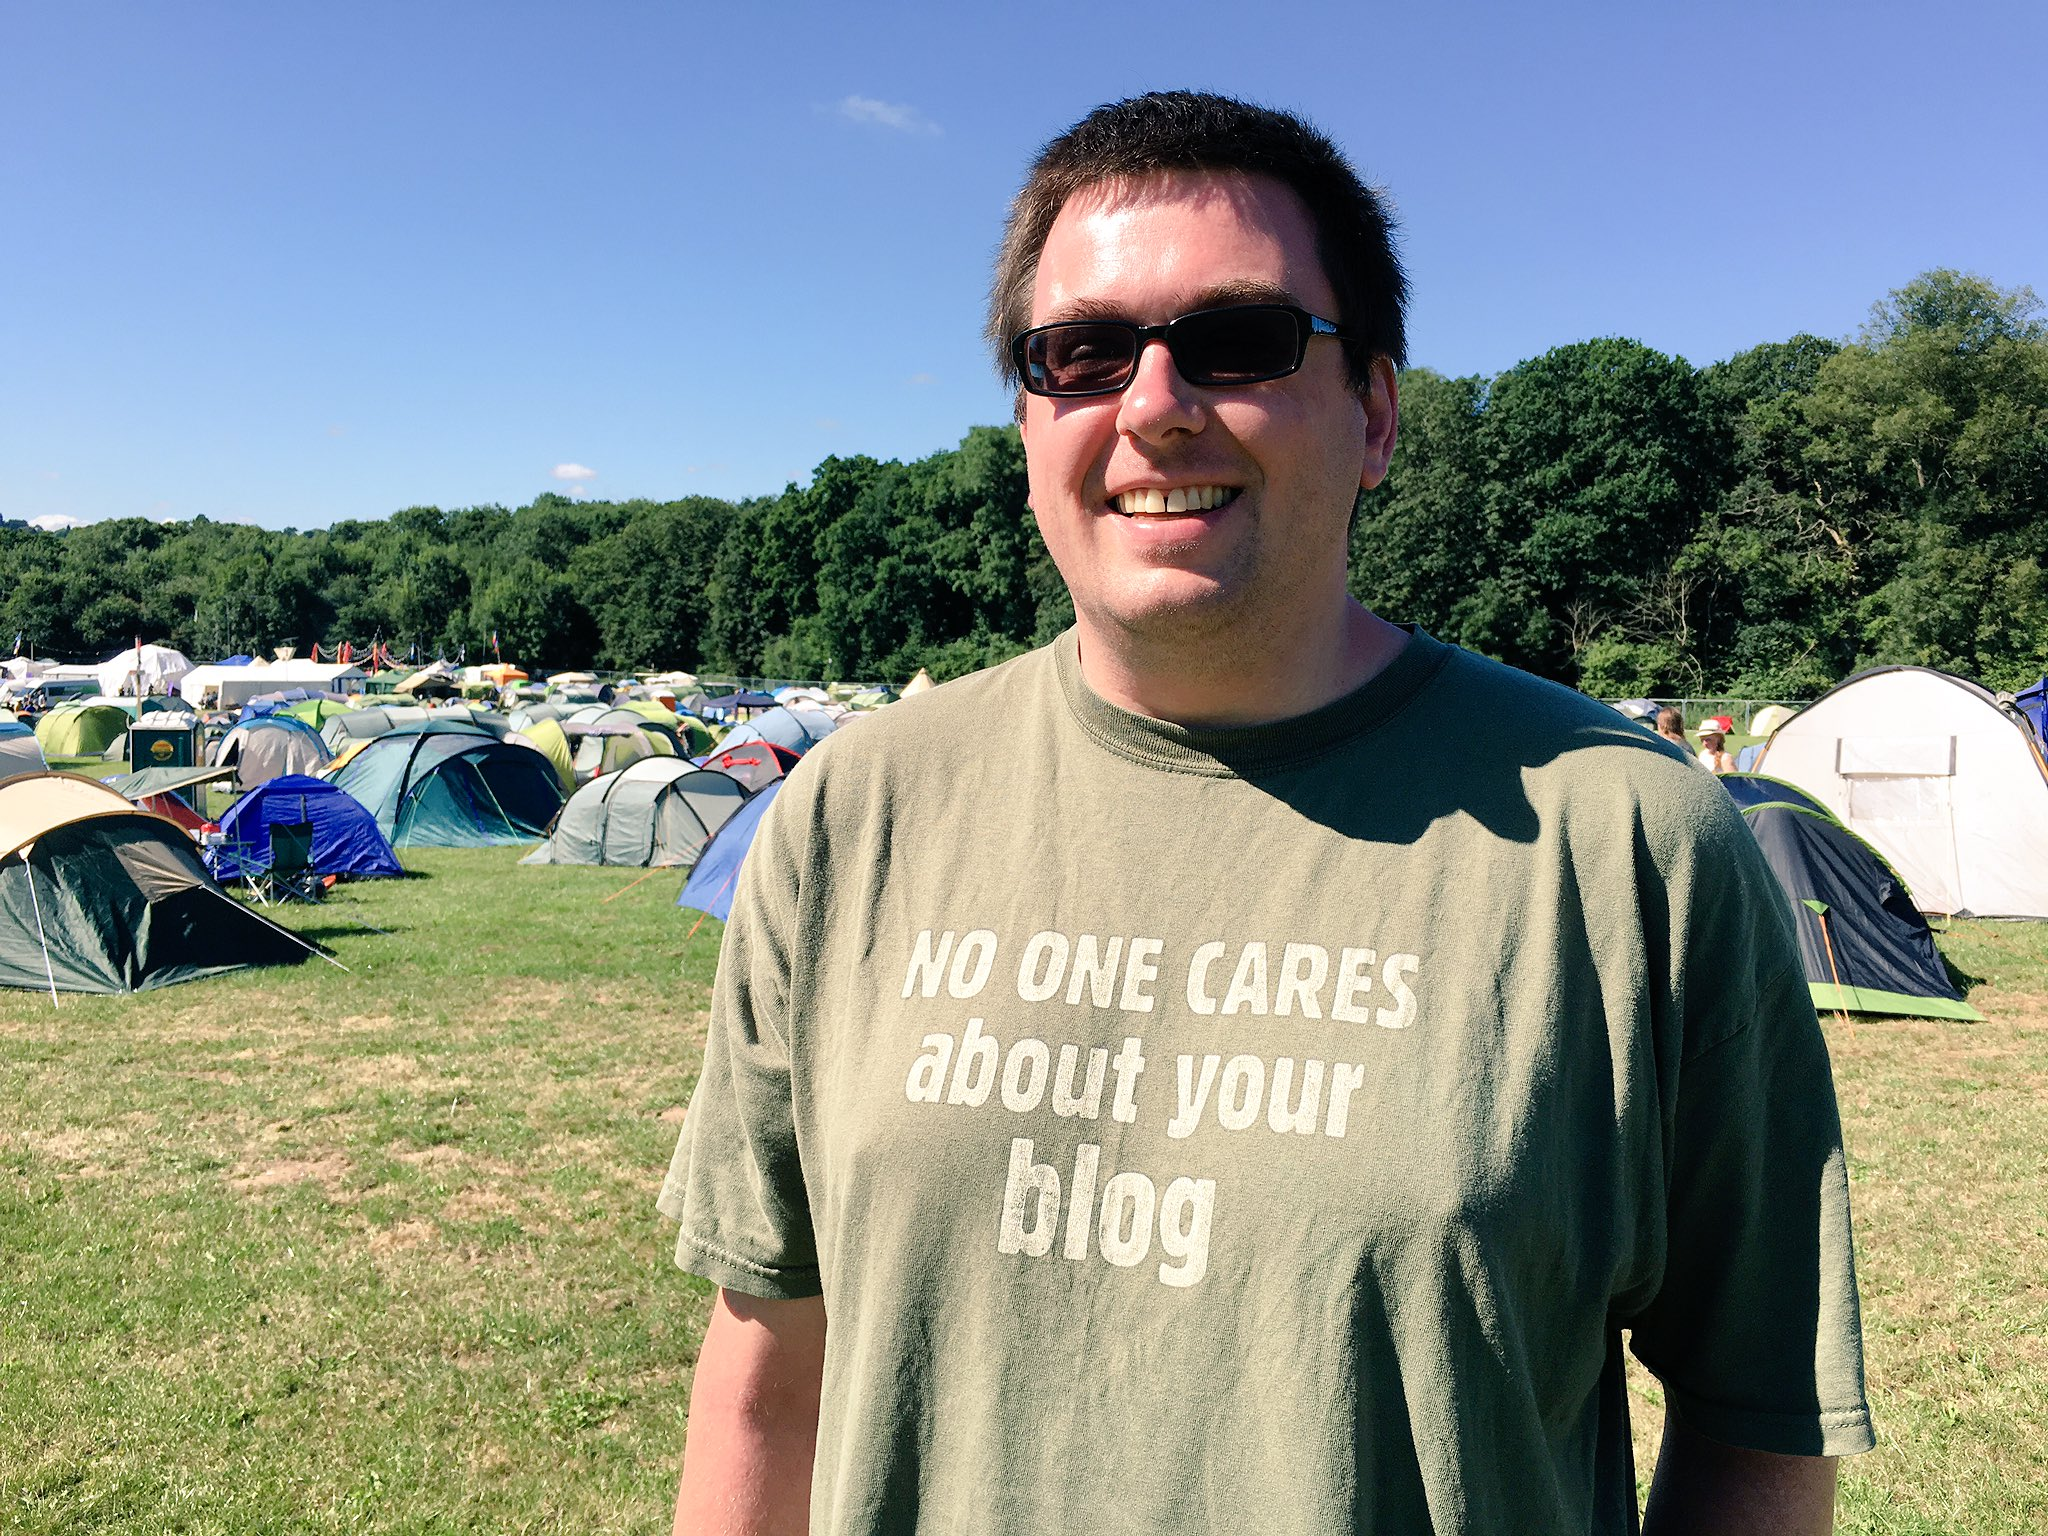 Admiring @Ormiret's t-shirt at #emfcamp  (Have you seen my blog?) https://t.co/XL6Kc5HGnX